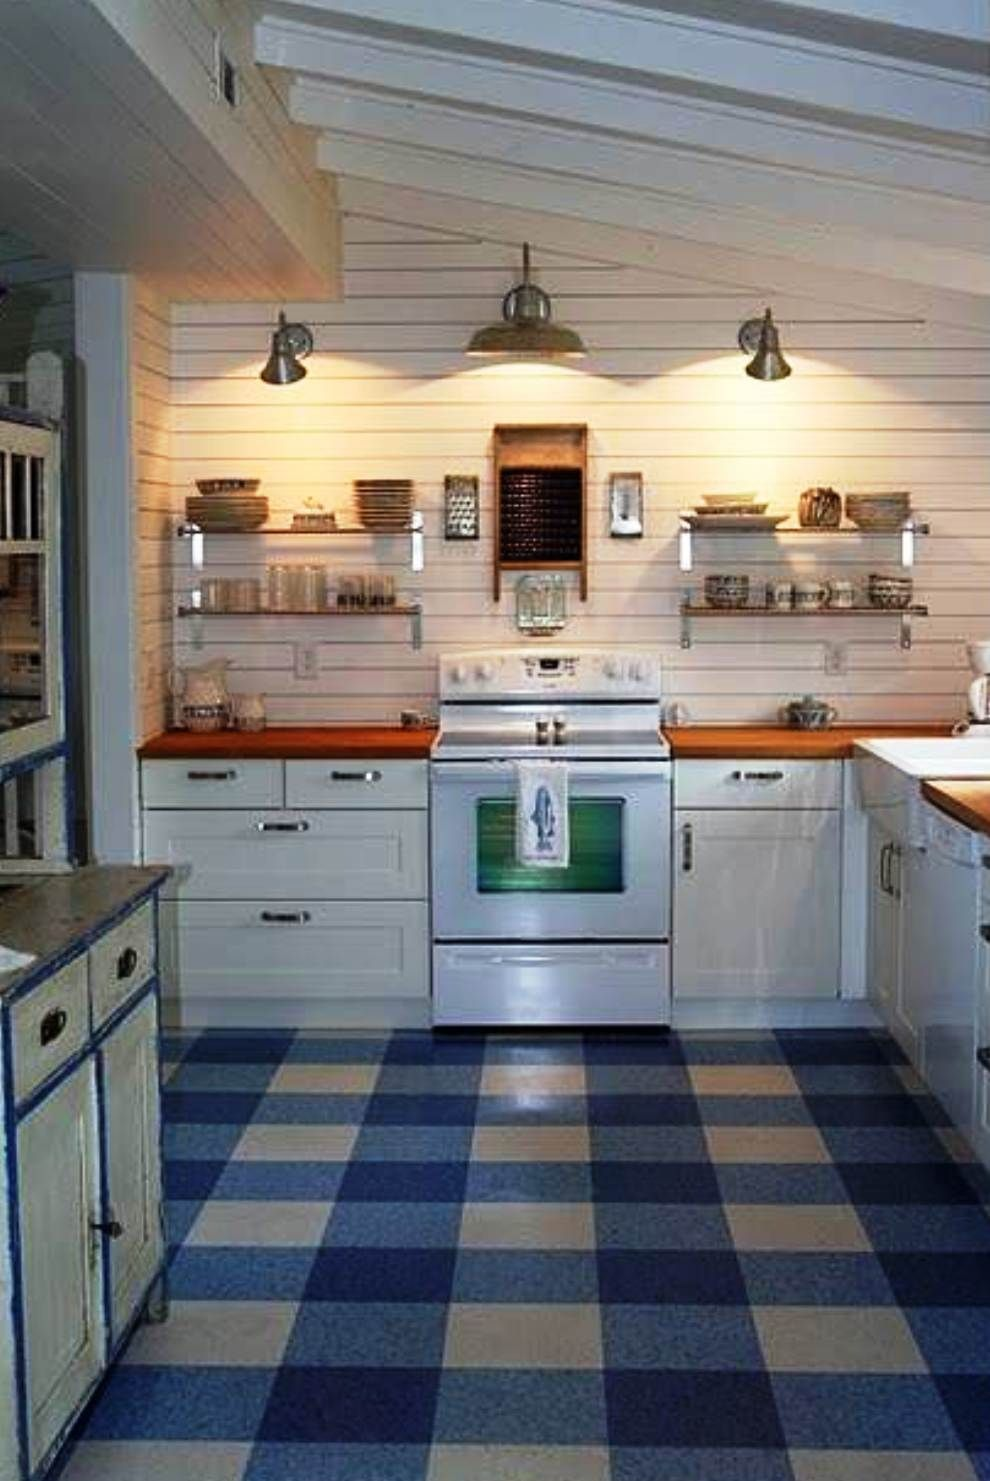 Flooring Ideas Benefits Of Linoleum Floor Blue Pattern Linoleum Tile Floor For Linoleum Kitchen Floors Kitchen Flooring Popular Kitchen Designs